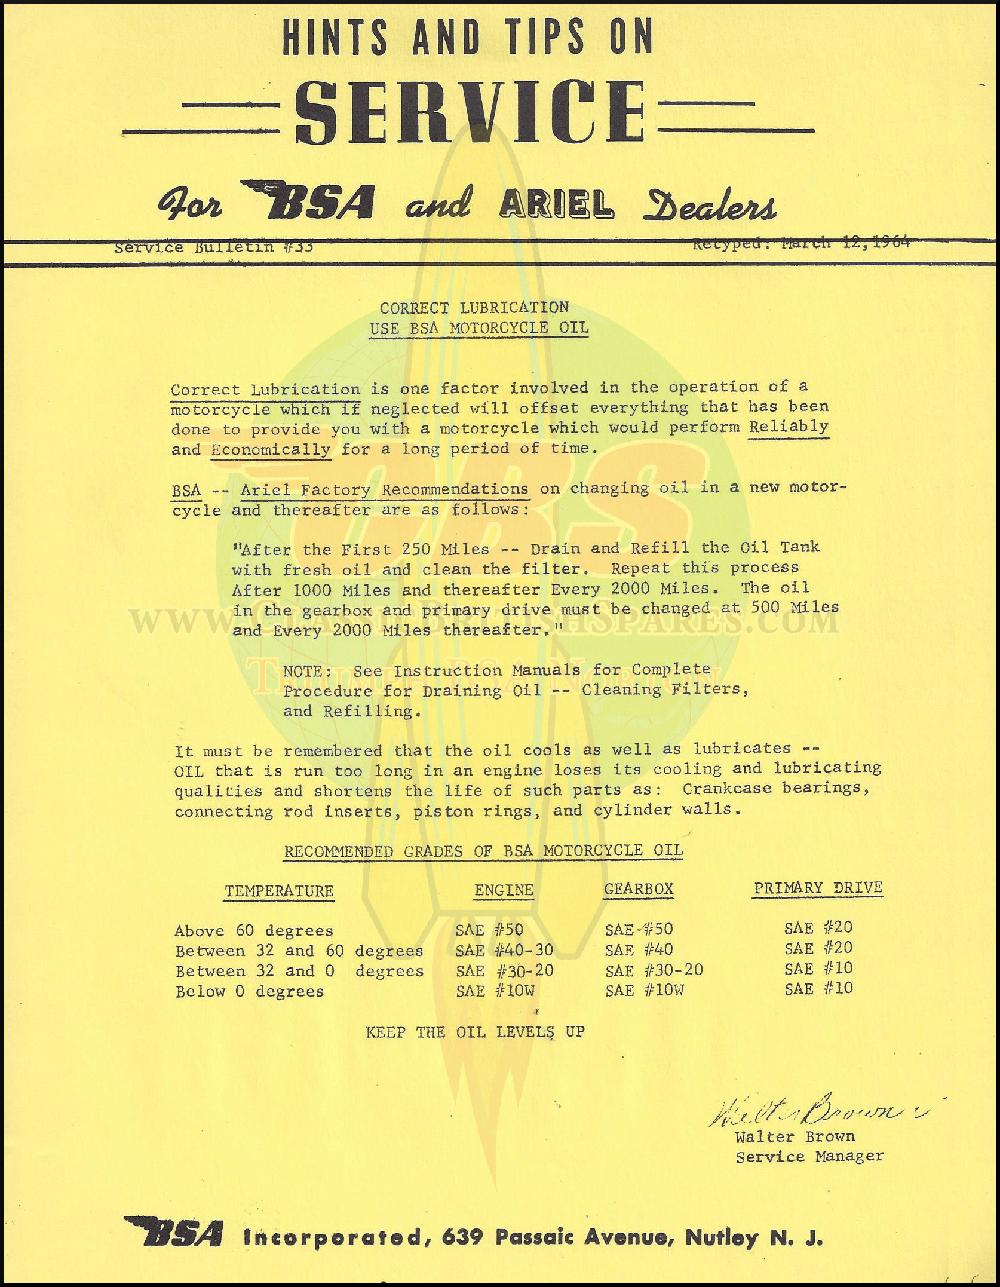 Service Bulletin: Correct Lubrication For BSA Motorcycles